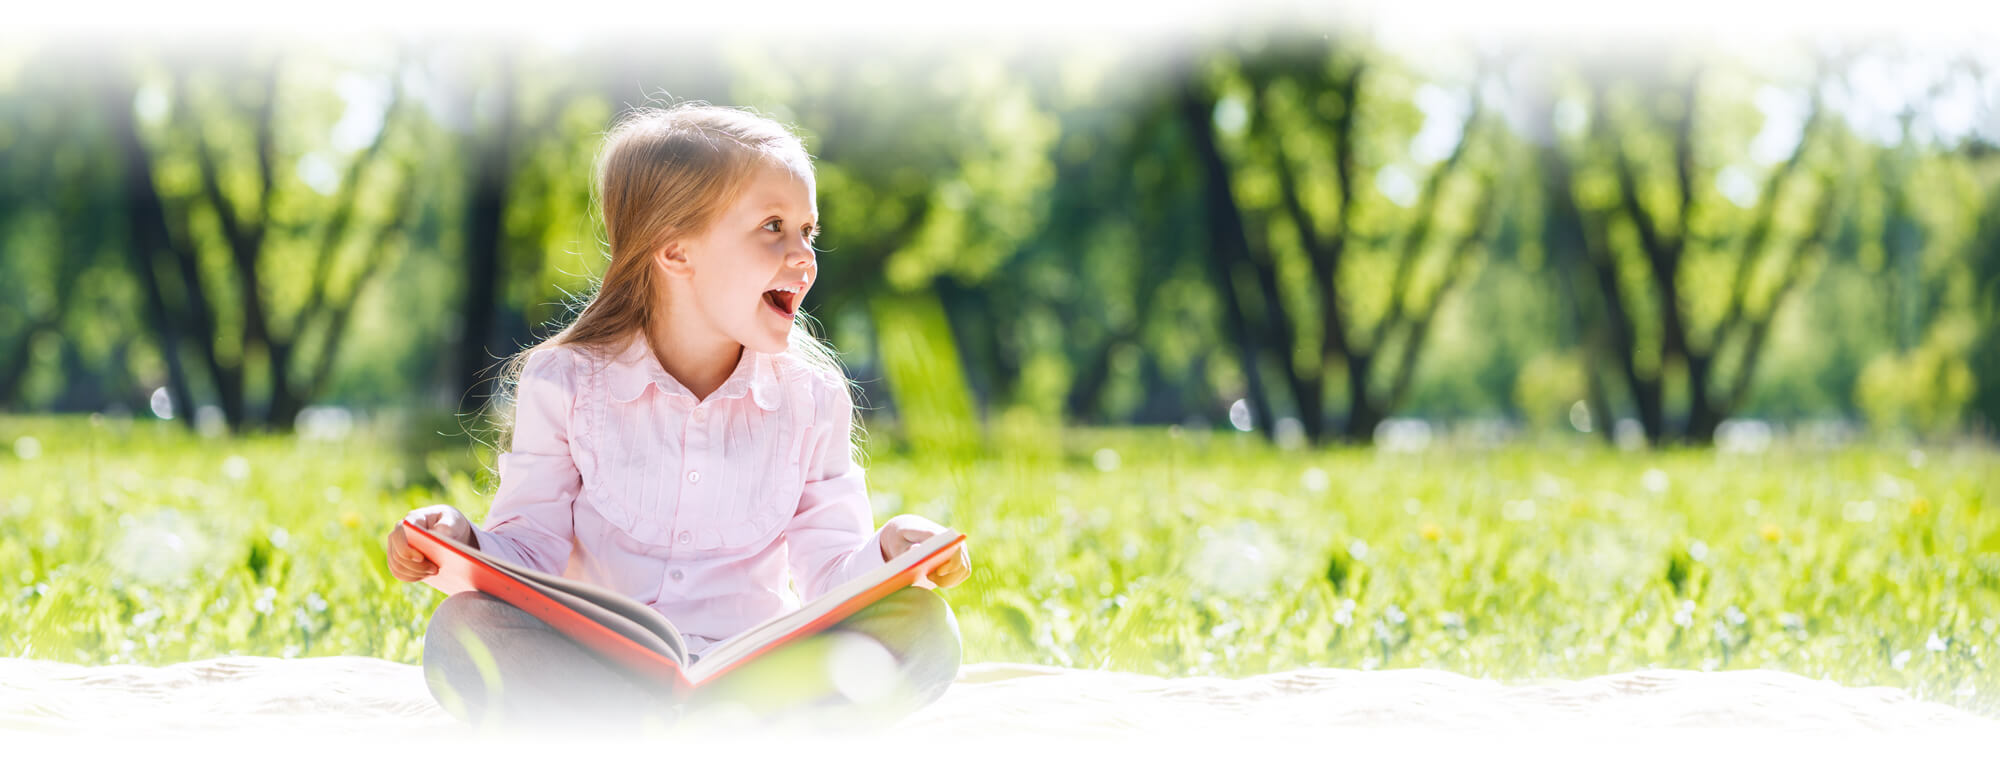 excited young girl holding book